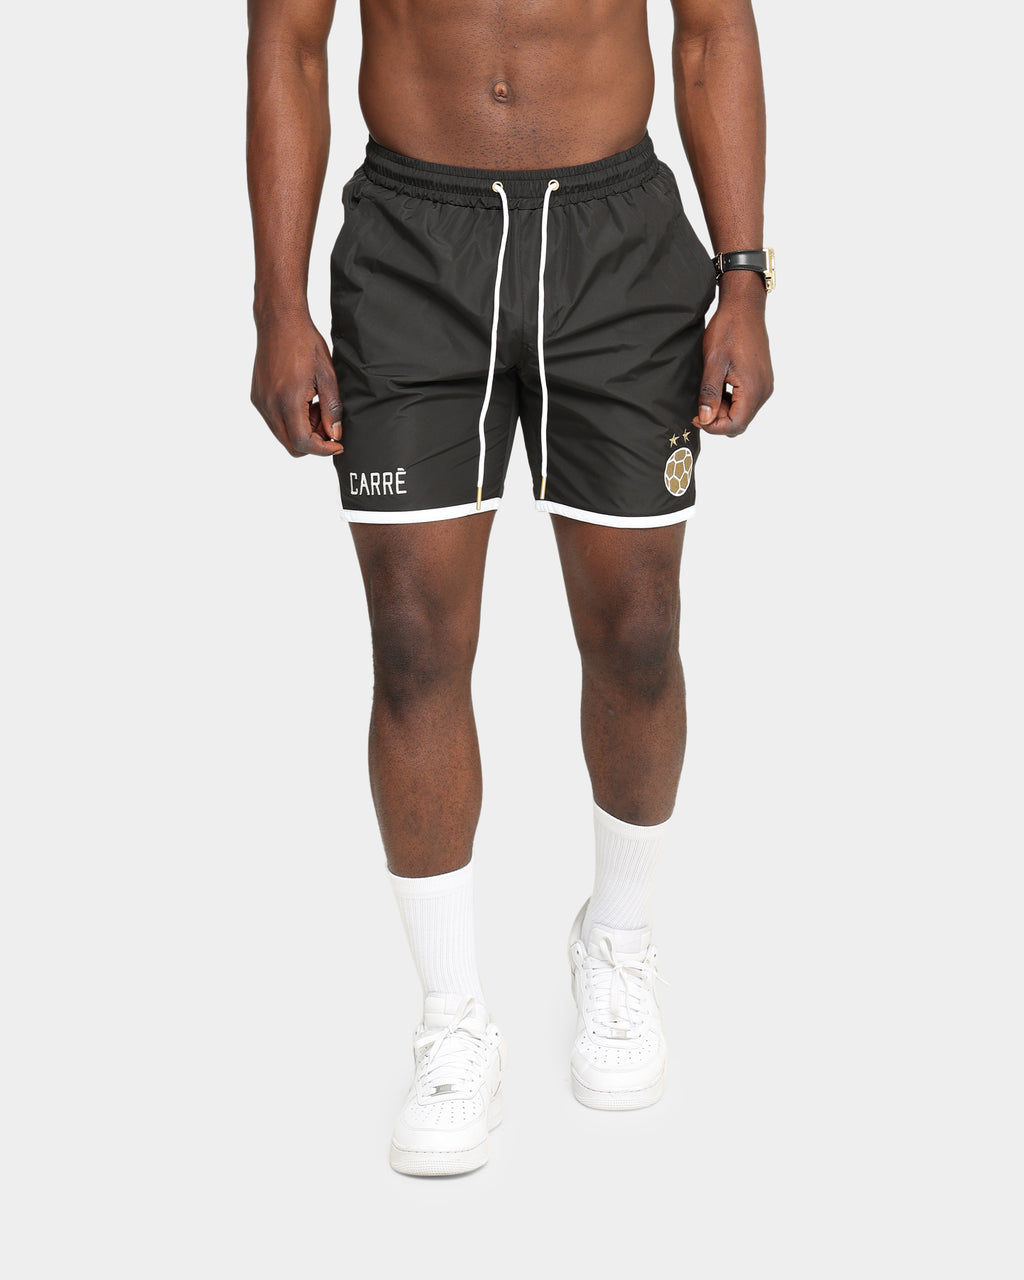 Carré Men's Deux Shorts Black